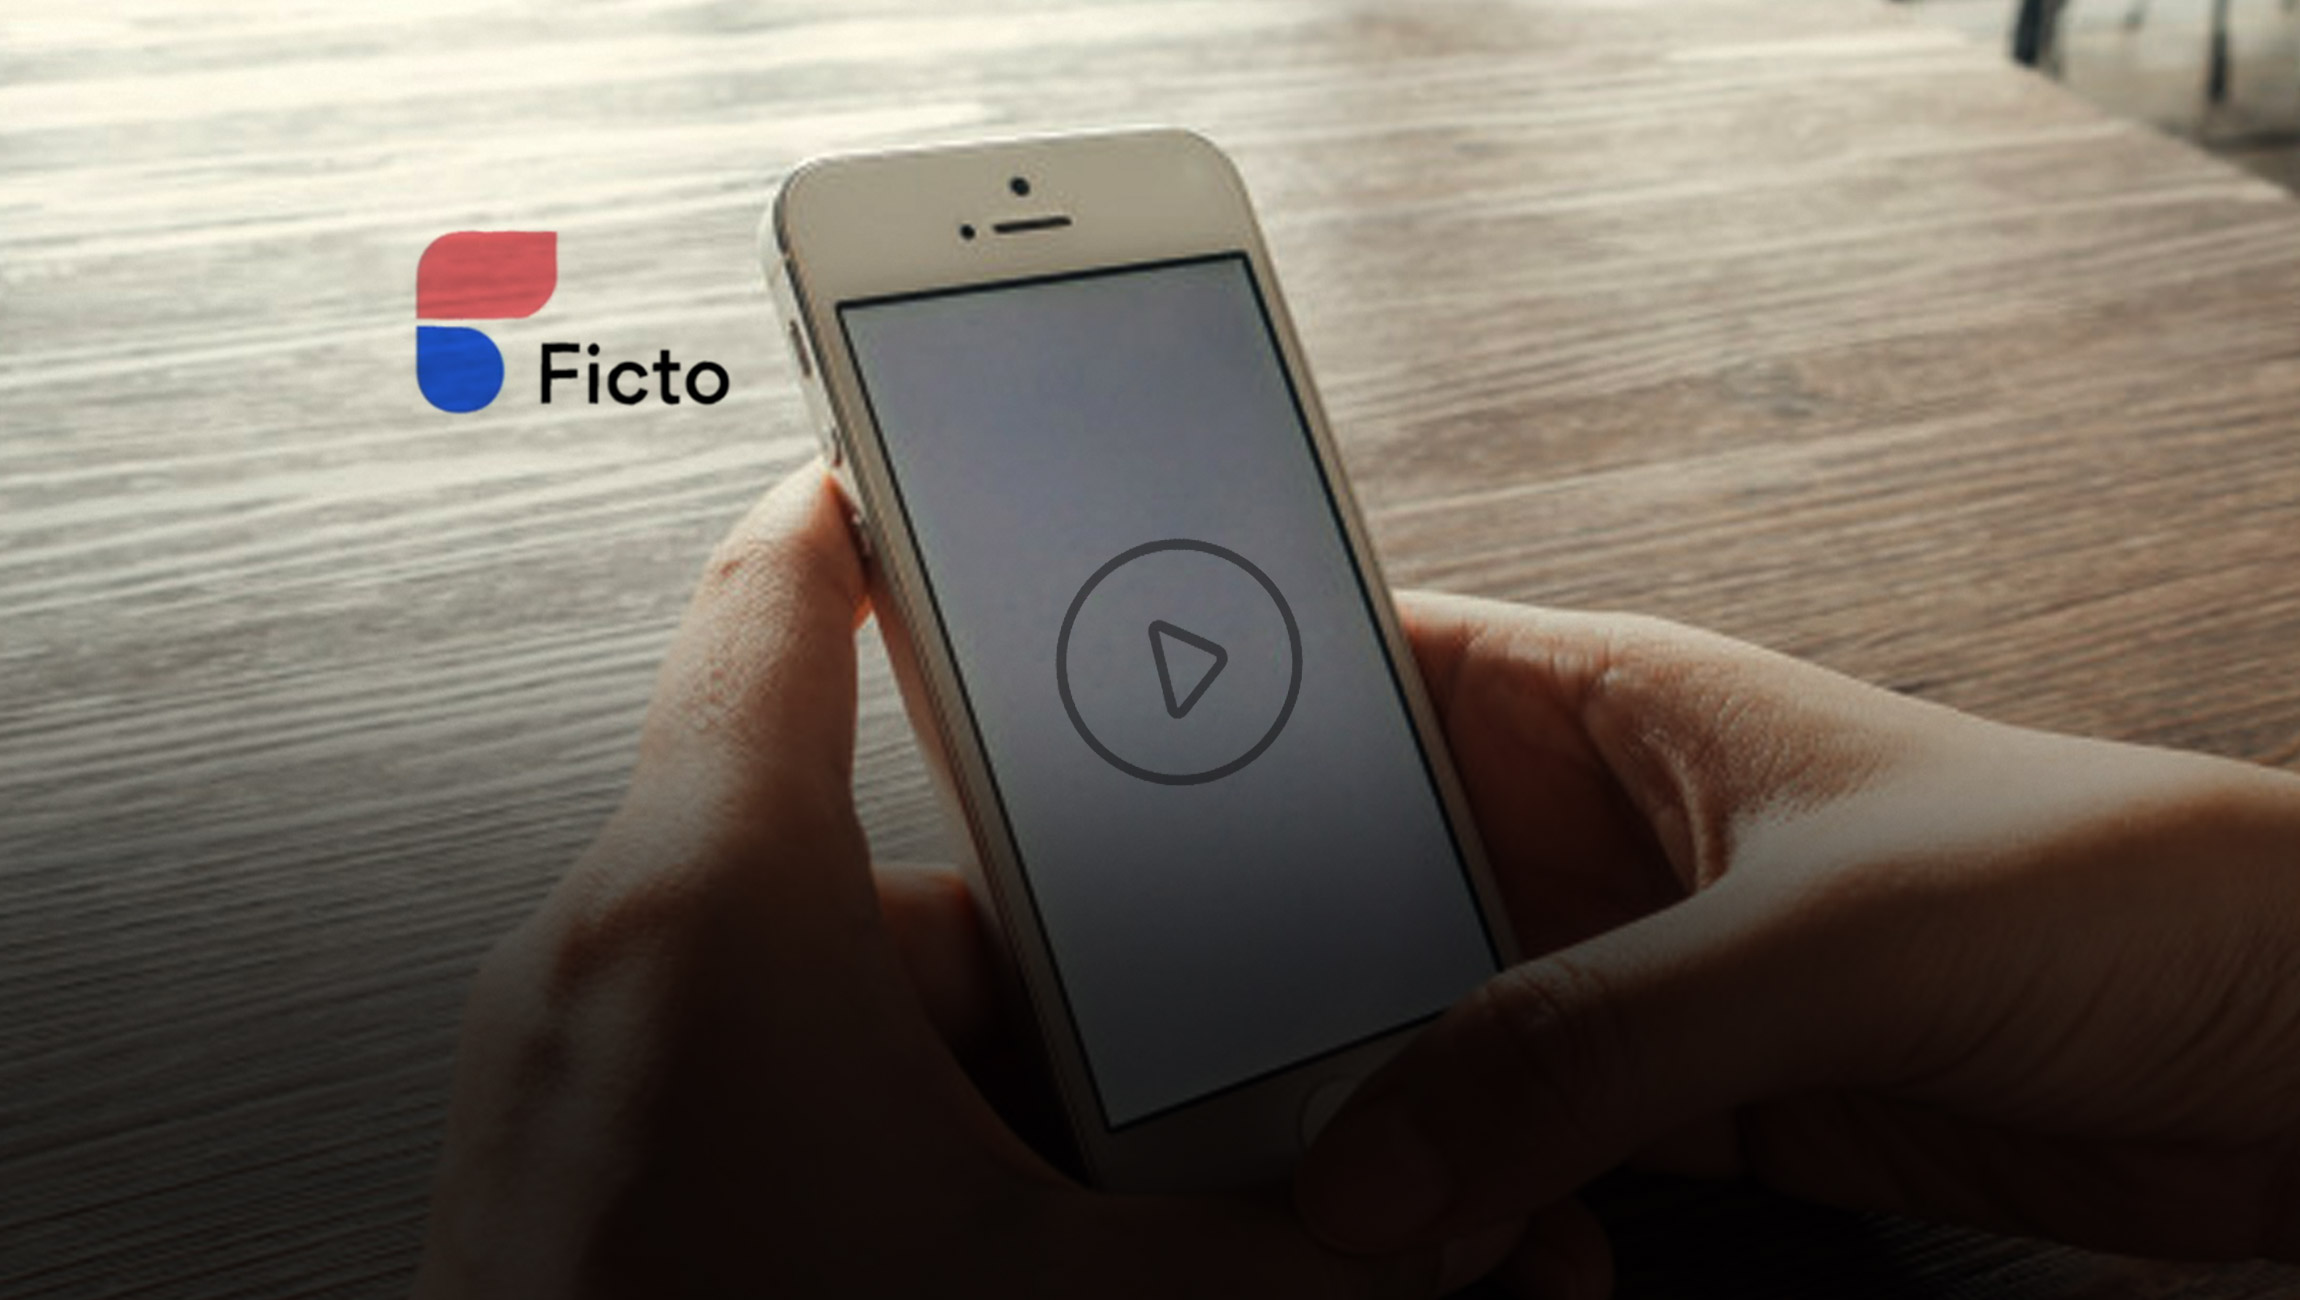 Ficto Launches Ficto Studio at 2020 Sundance Film Festival to Offer Custom, Creative Brand Integrations for Content on the Mobile-First Streaming Platform